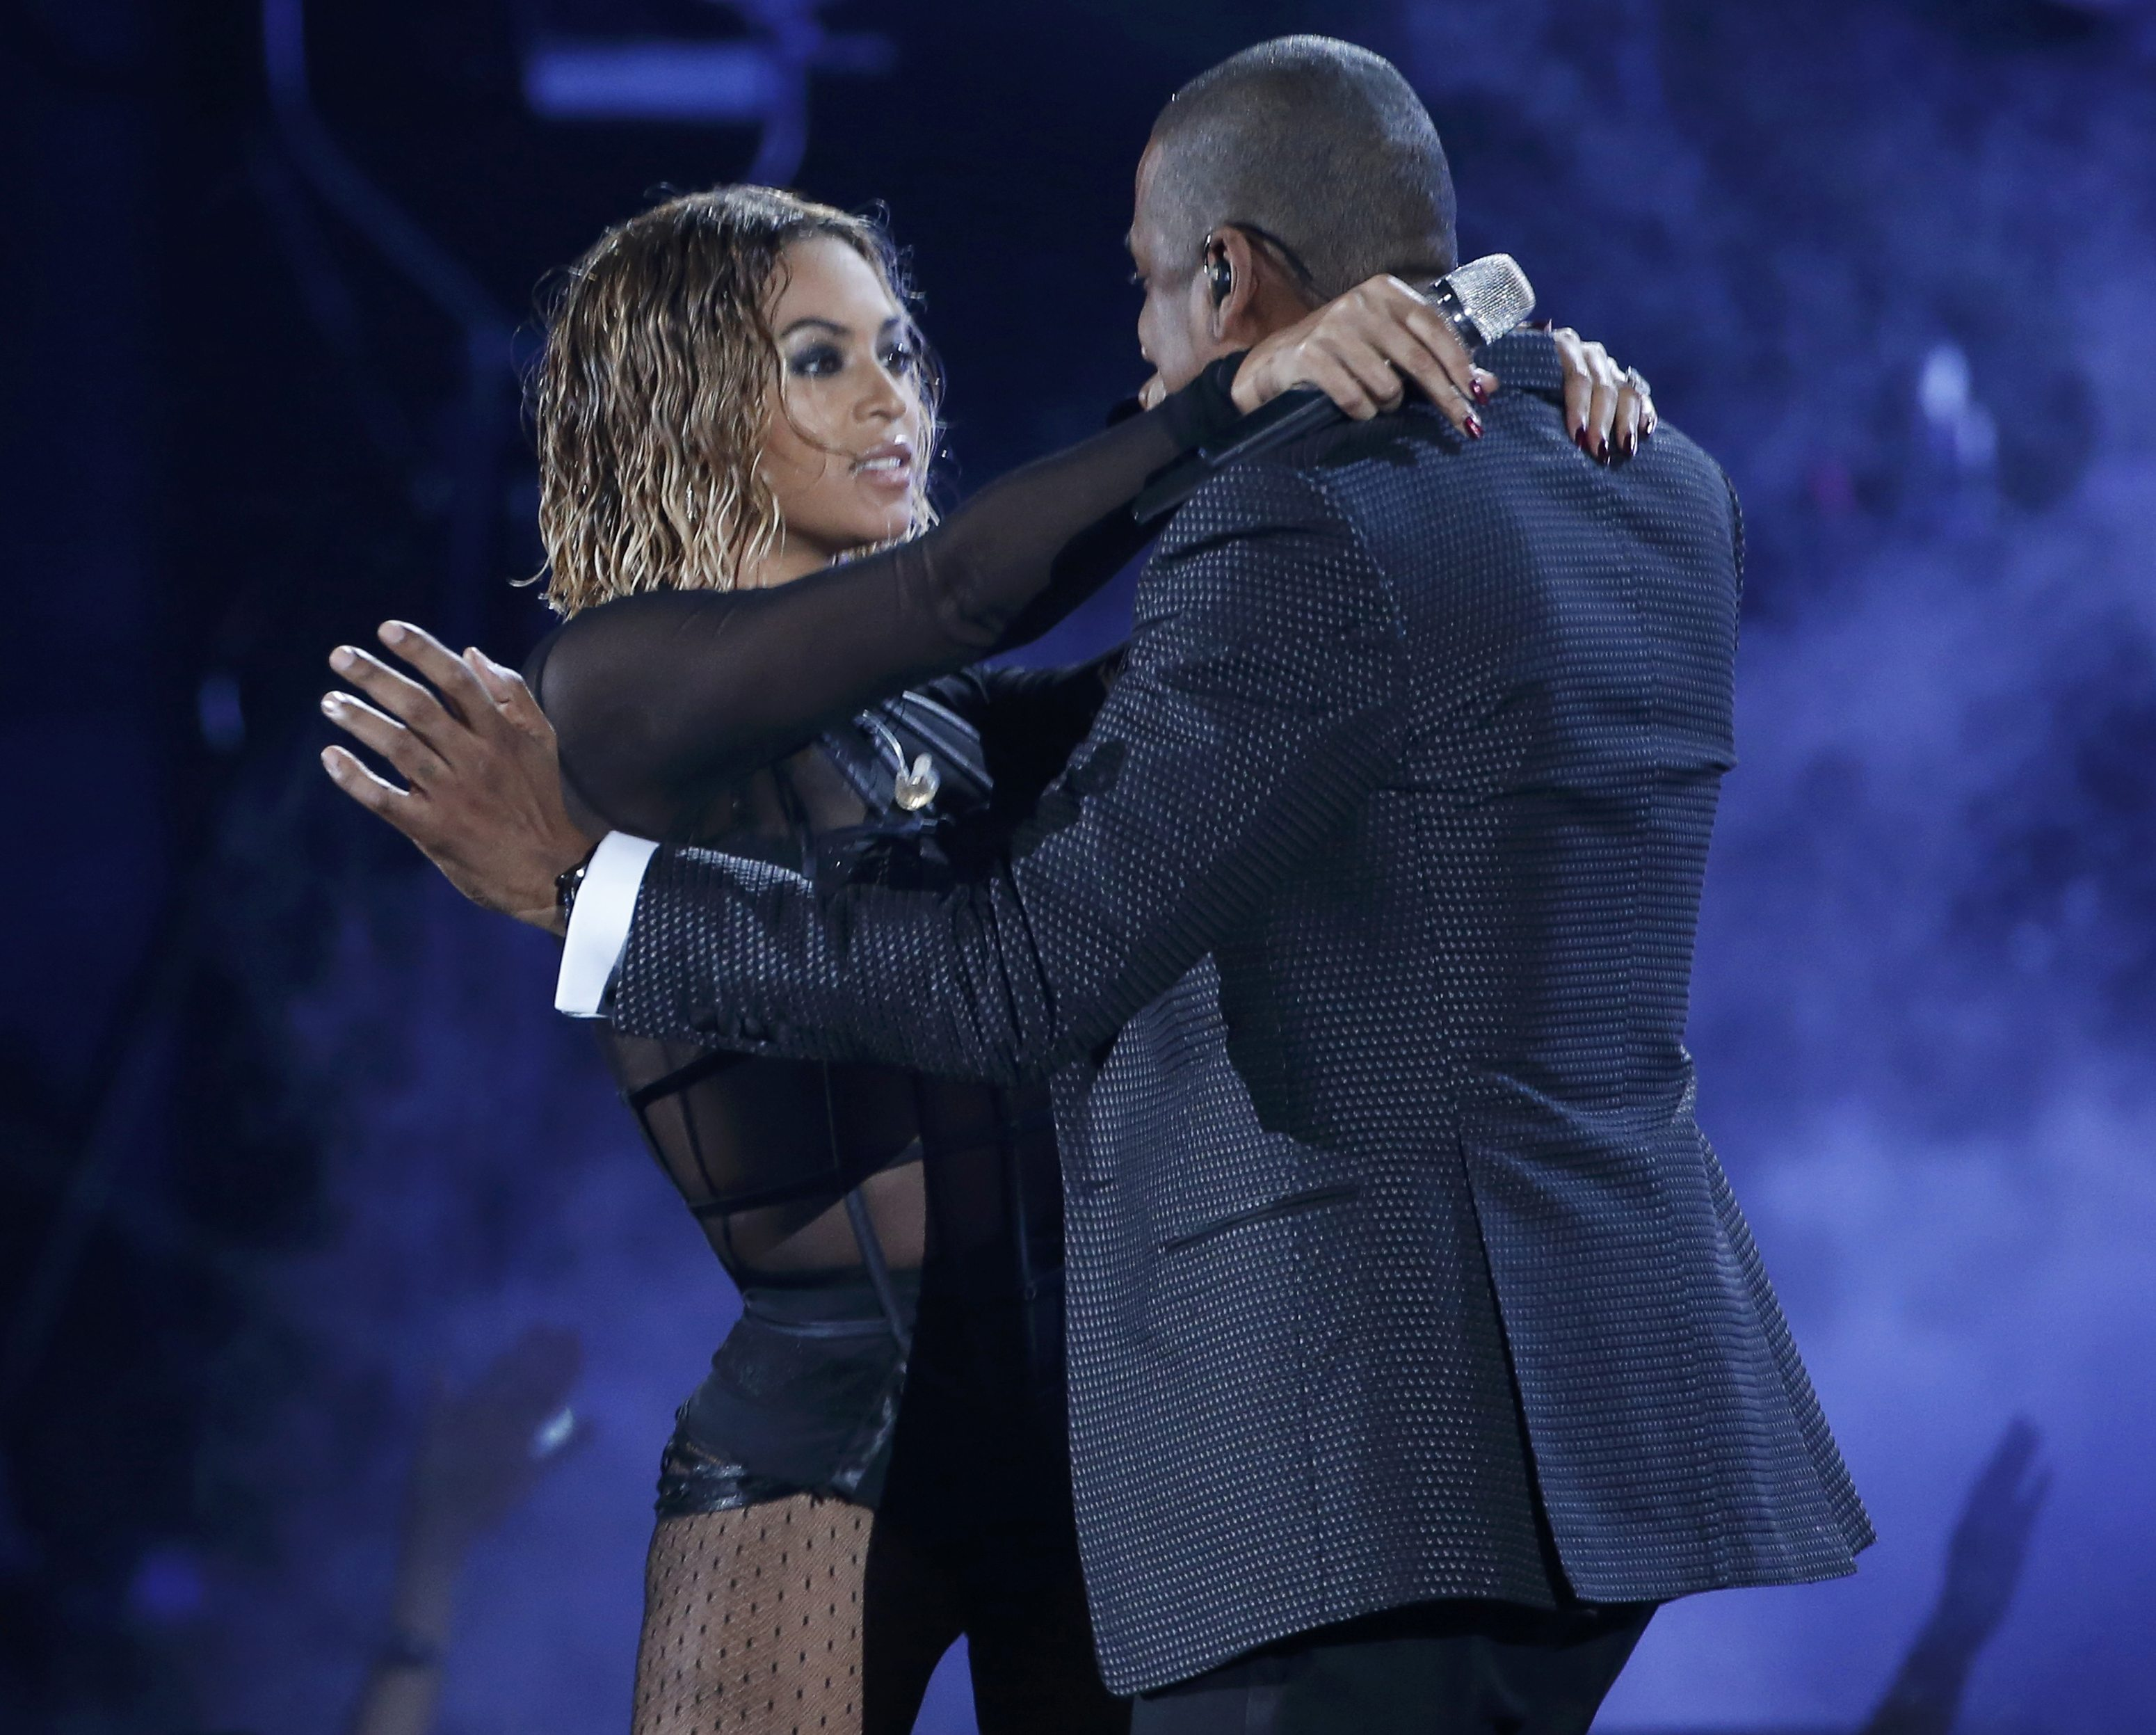 Beyonce embraces husband Jay Z during their steamy performance at the Grammys (Picture: Reuters)